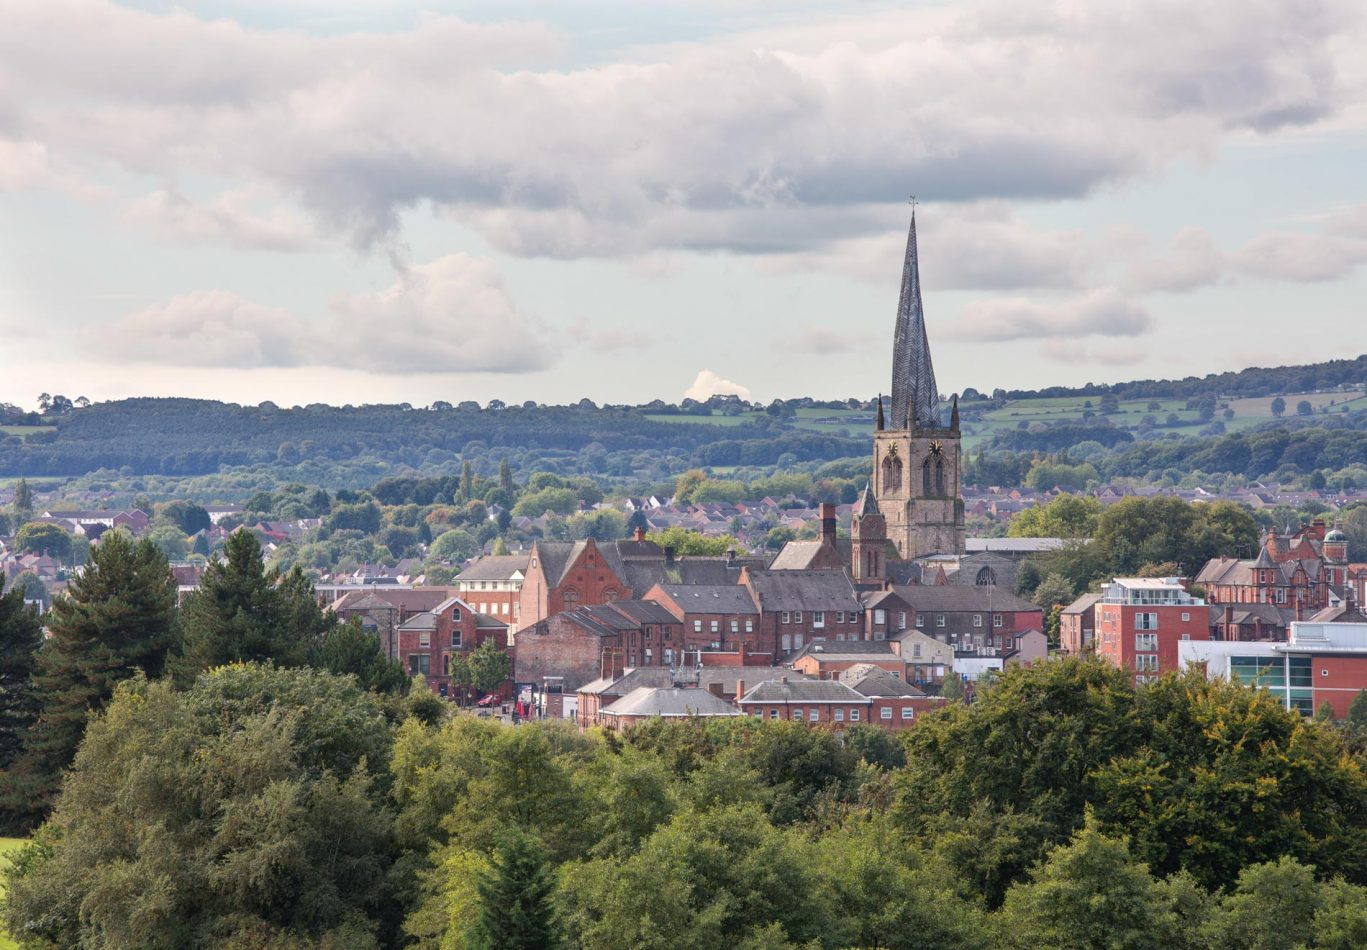 Cheserfield-Crooked-Spire-and-town (1)